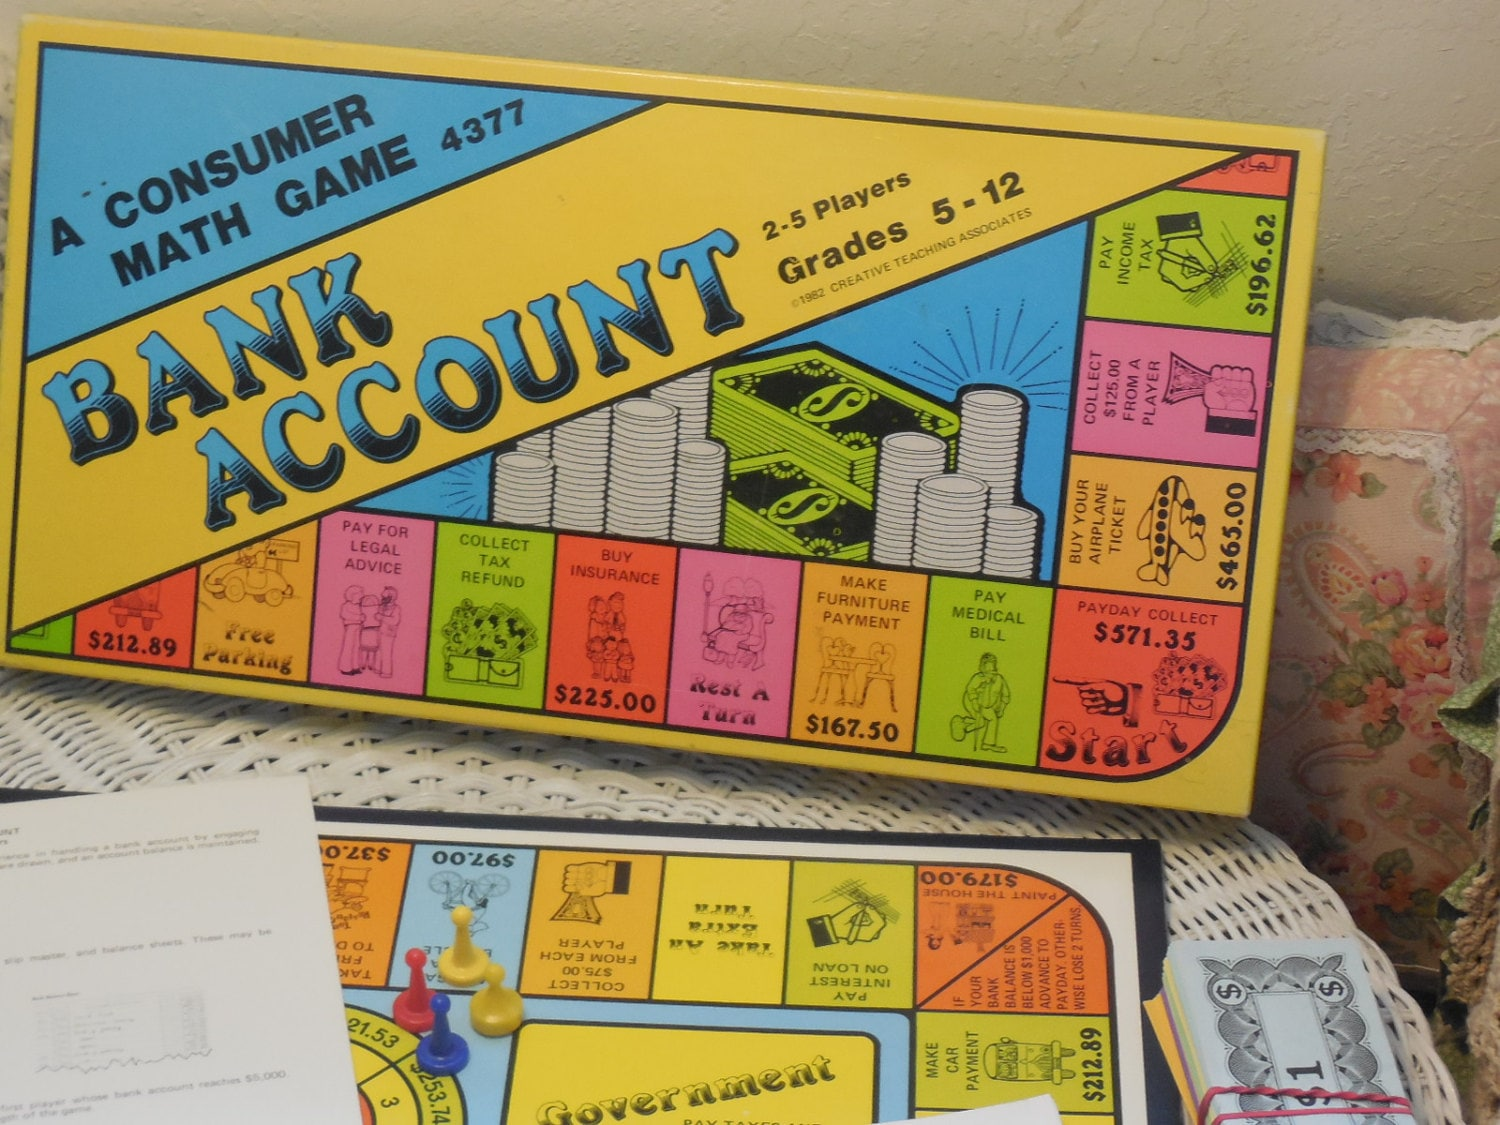 Bank account board game a consumer math game 1982 for Money in design home game